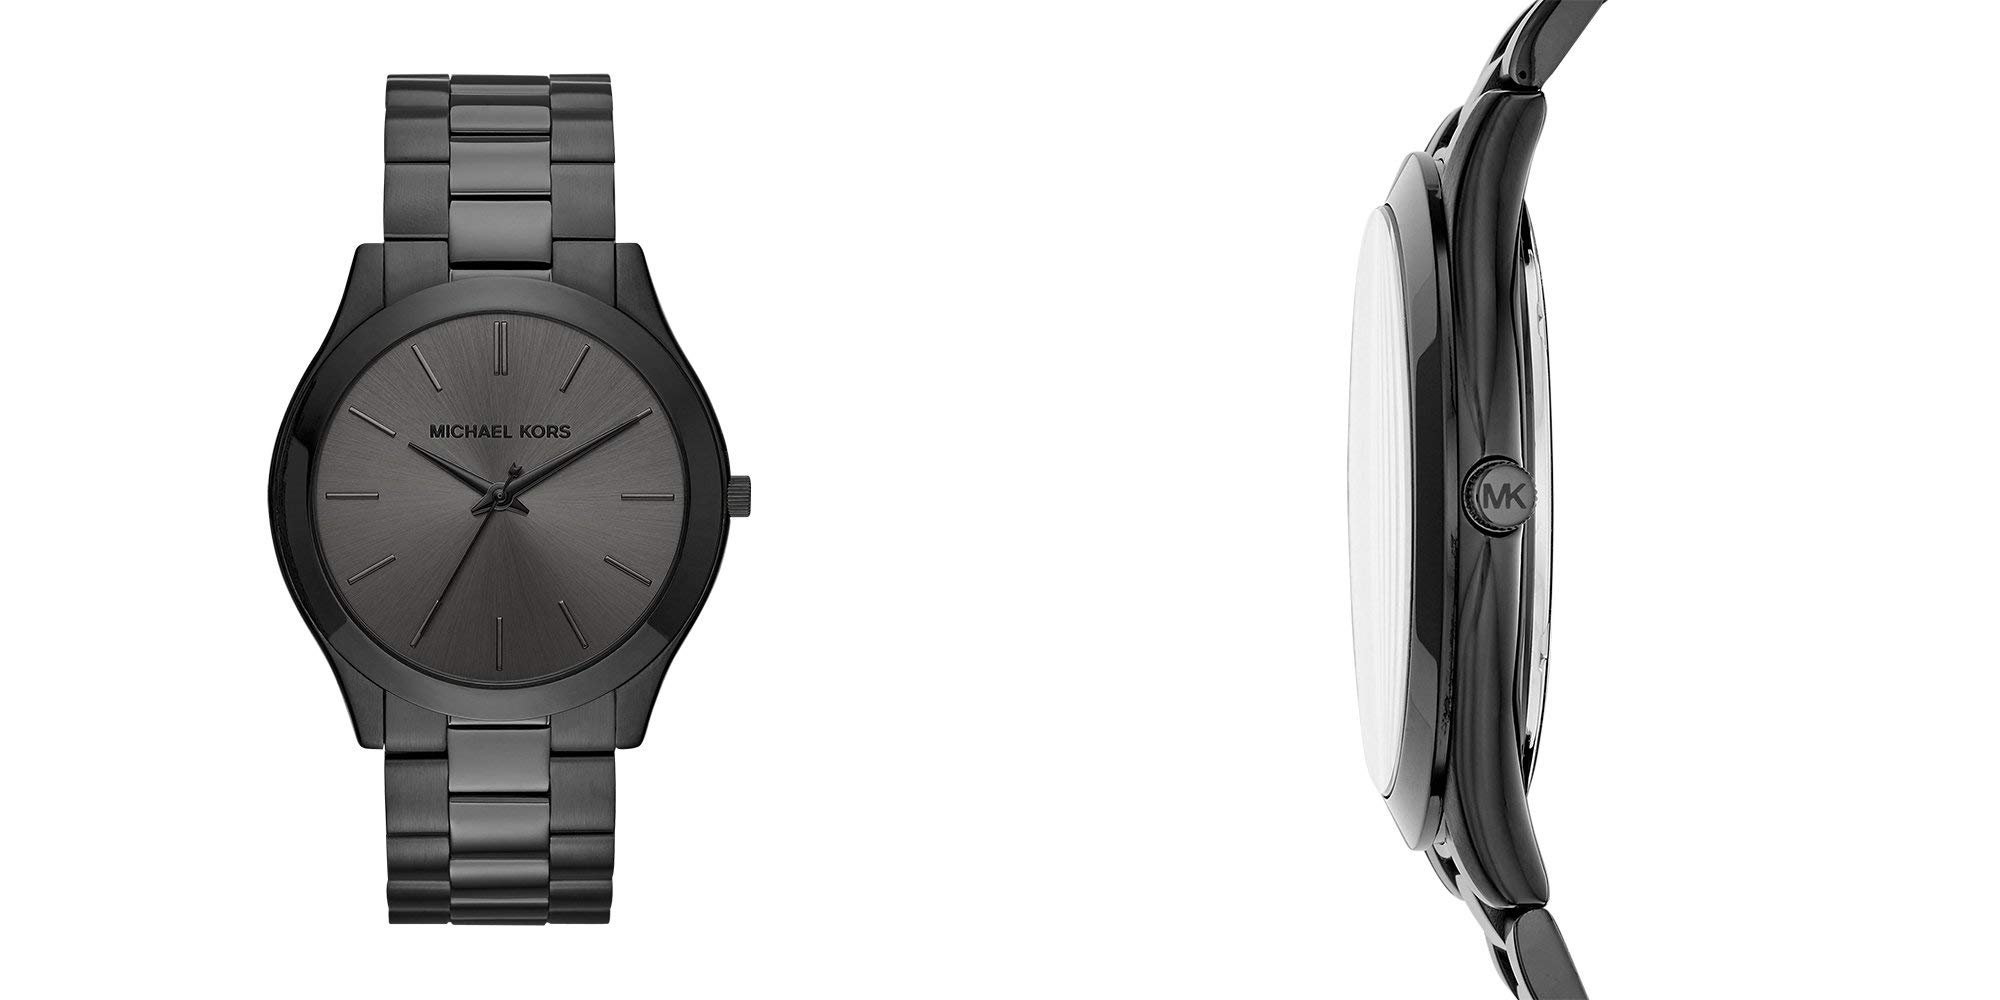 Strap on Michael Kors' Slim Runaway Watch for a sleek and sophisticated look: $99 (Reg. up to $195)